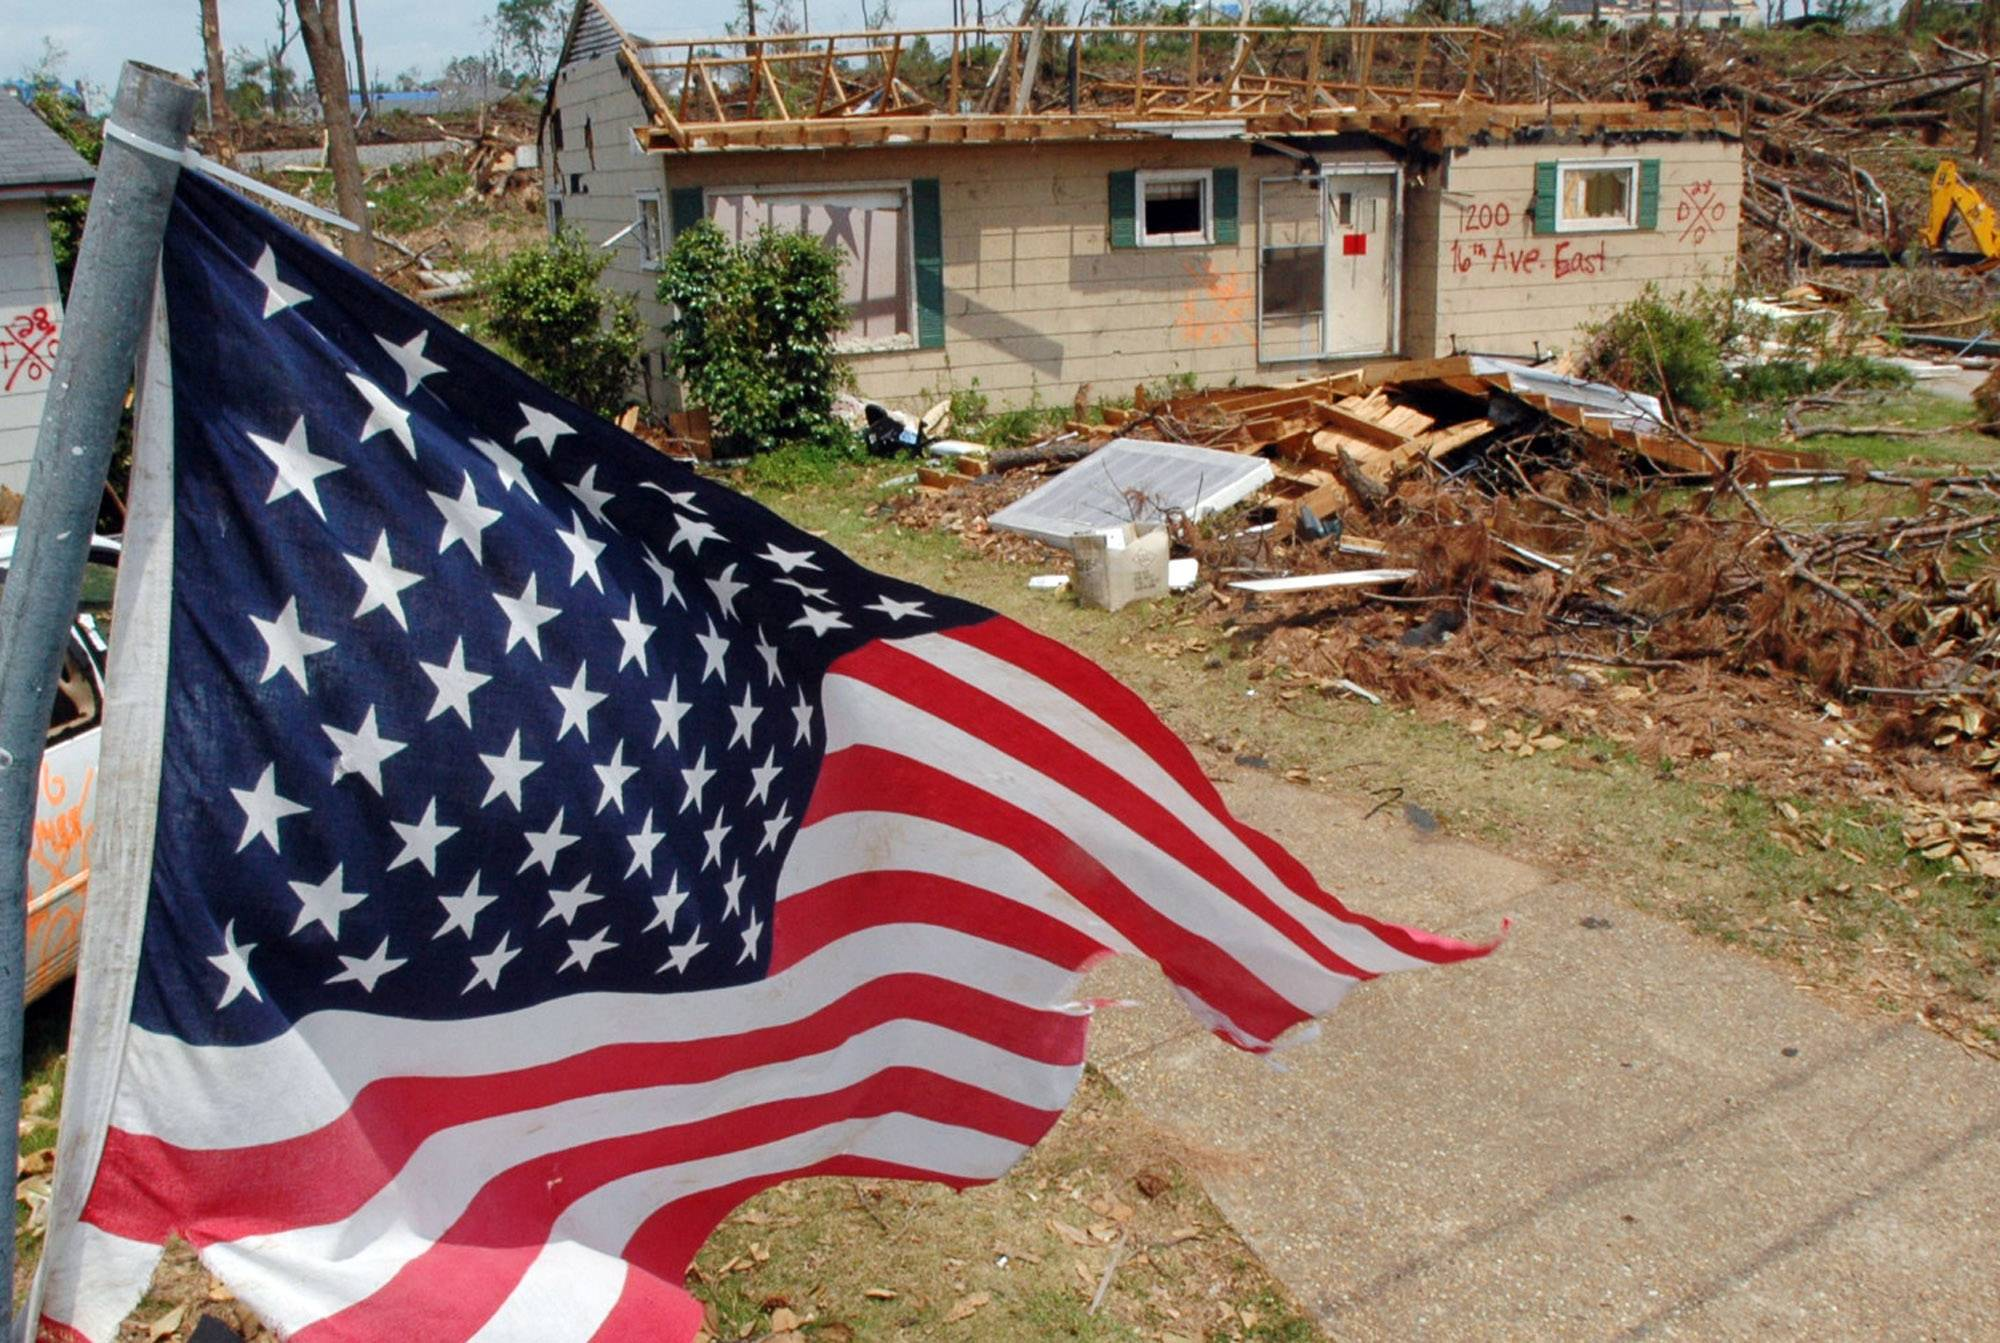 An American flag flies over the remains of a tornado-ravaged neighborhood in Tuscaloosa, Ala.